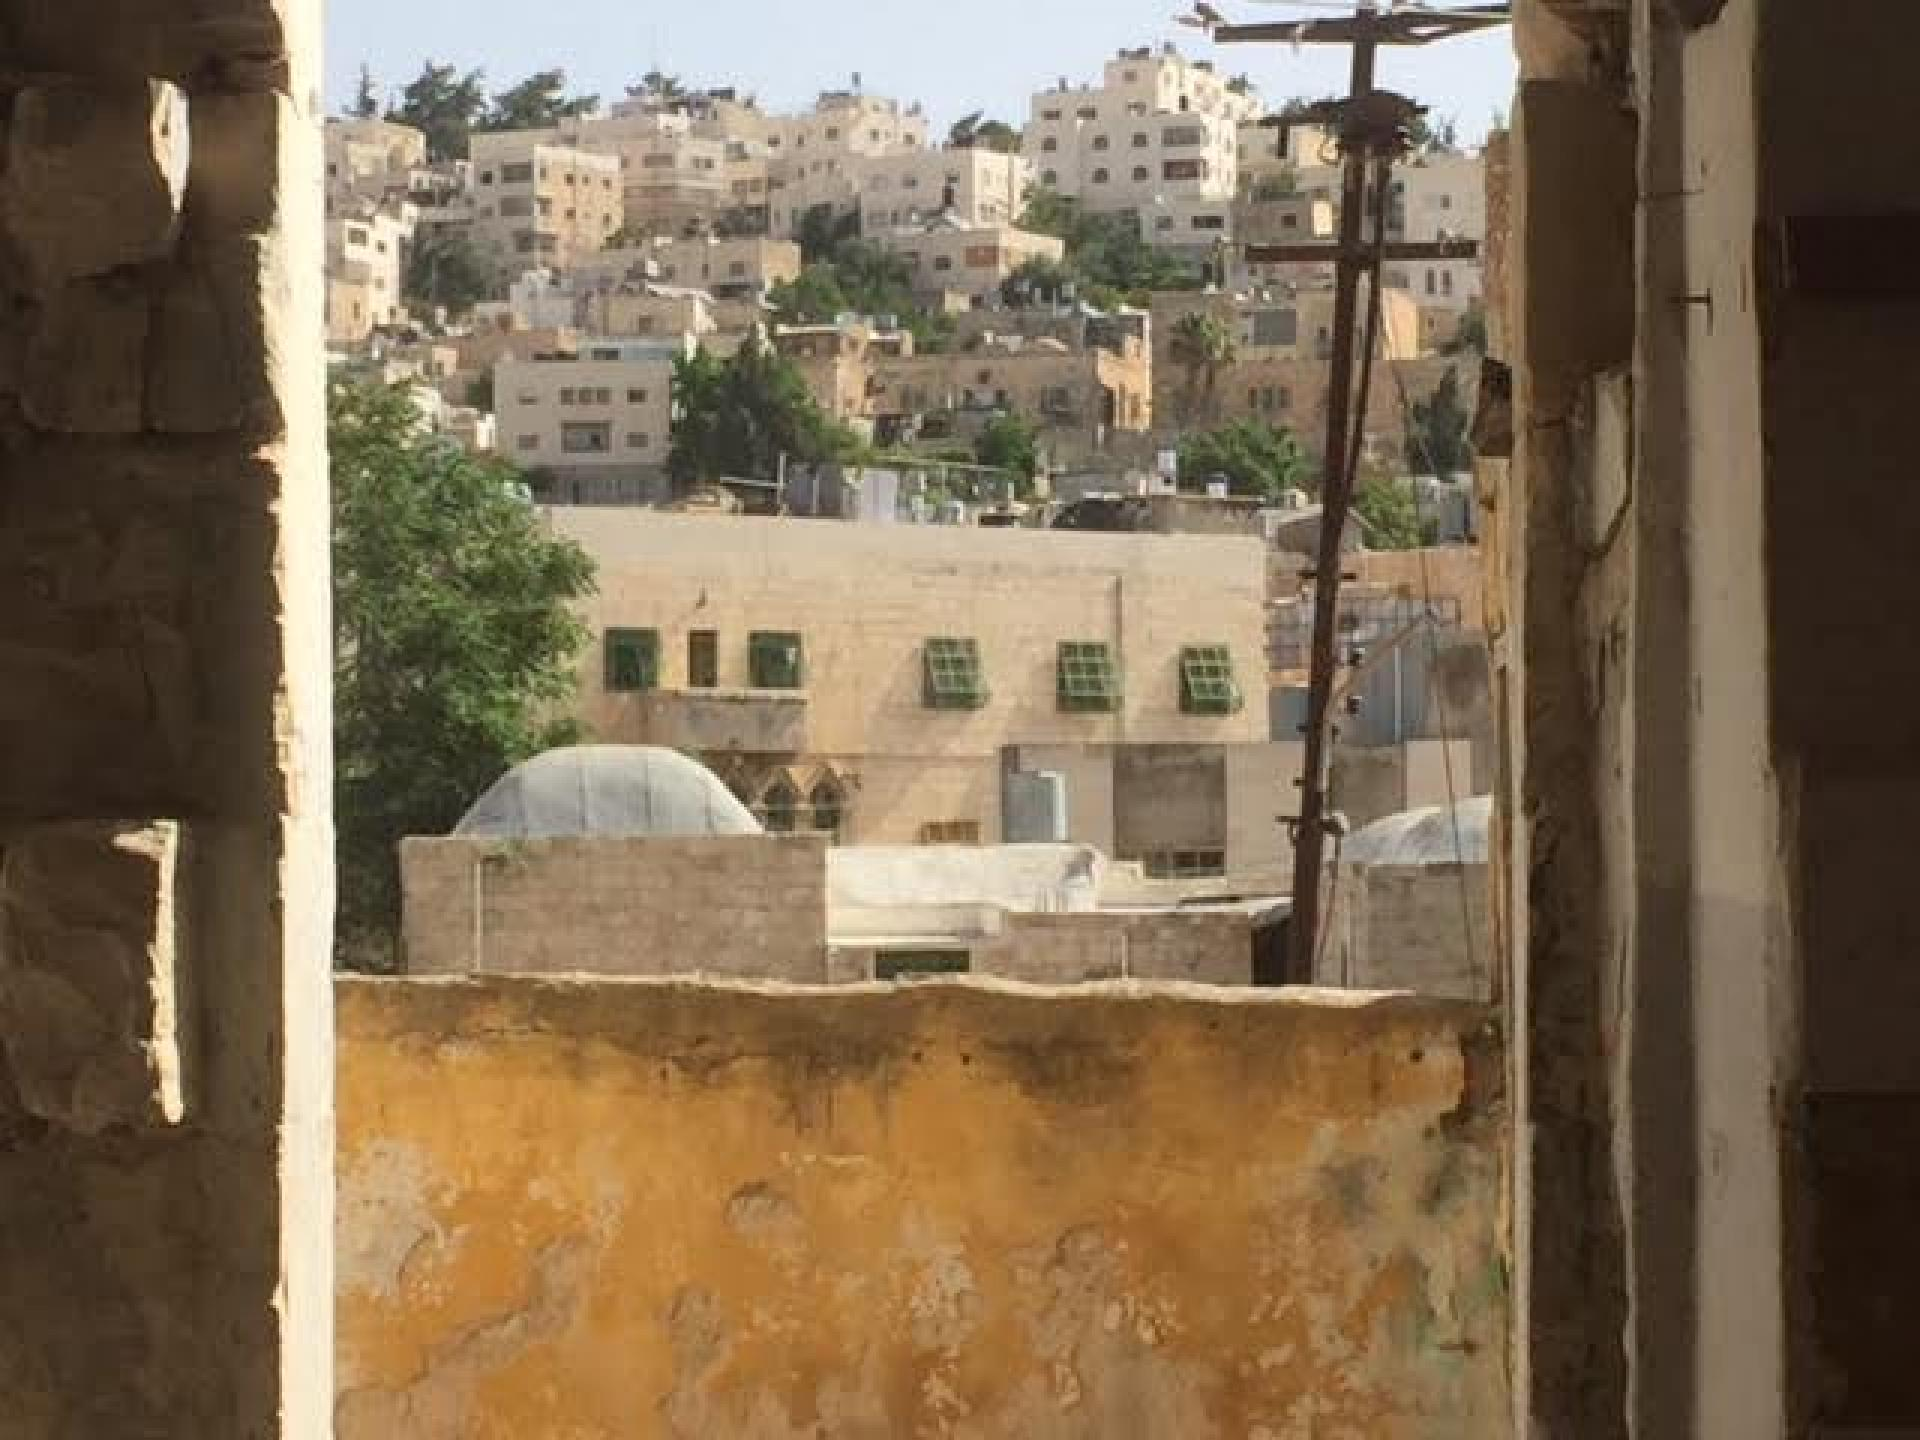 The view from the windows of the building in Hebron